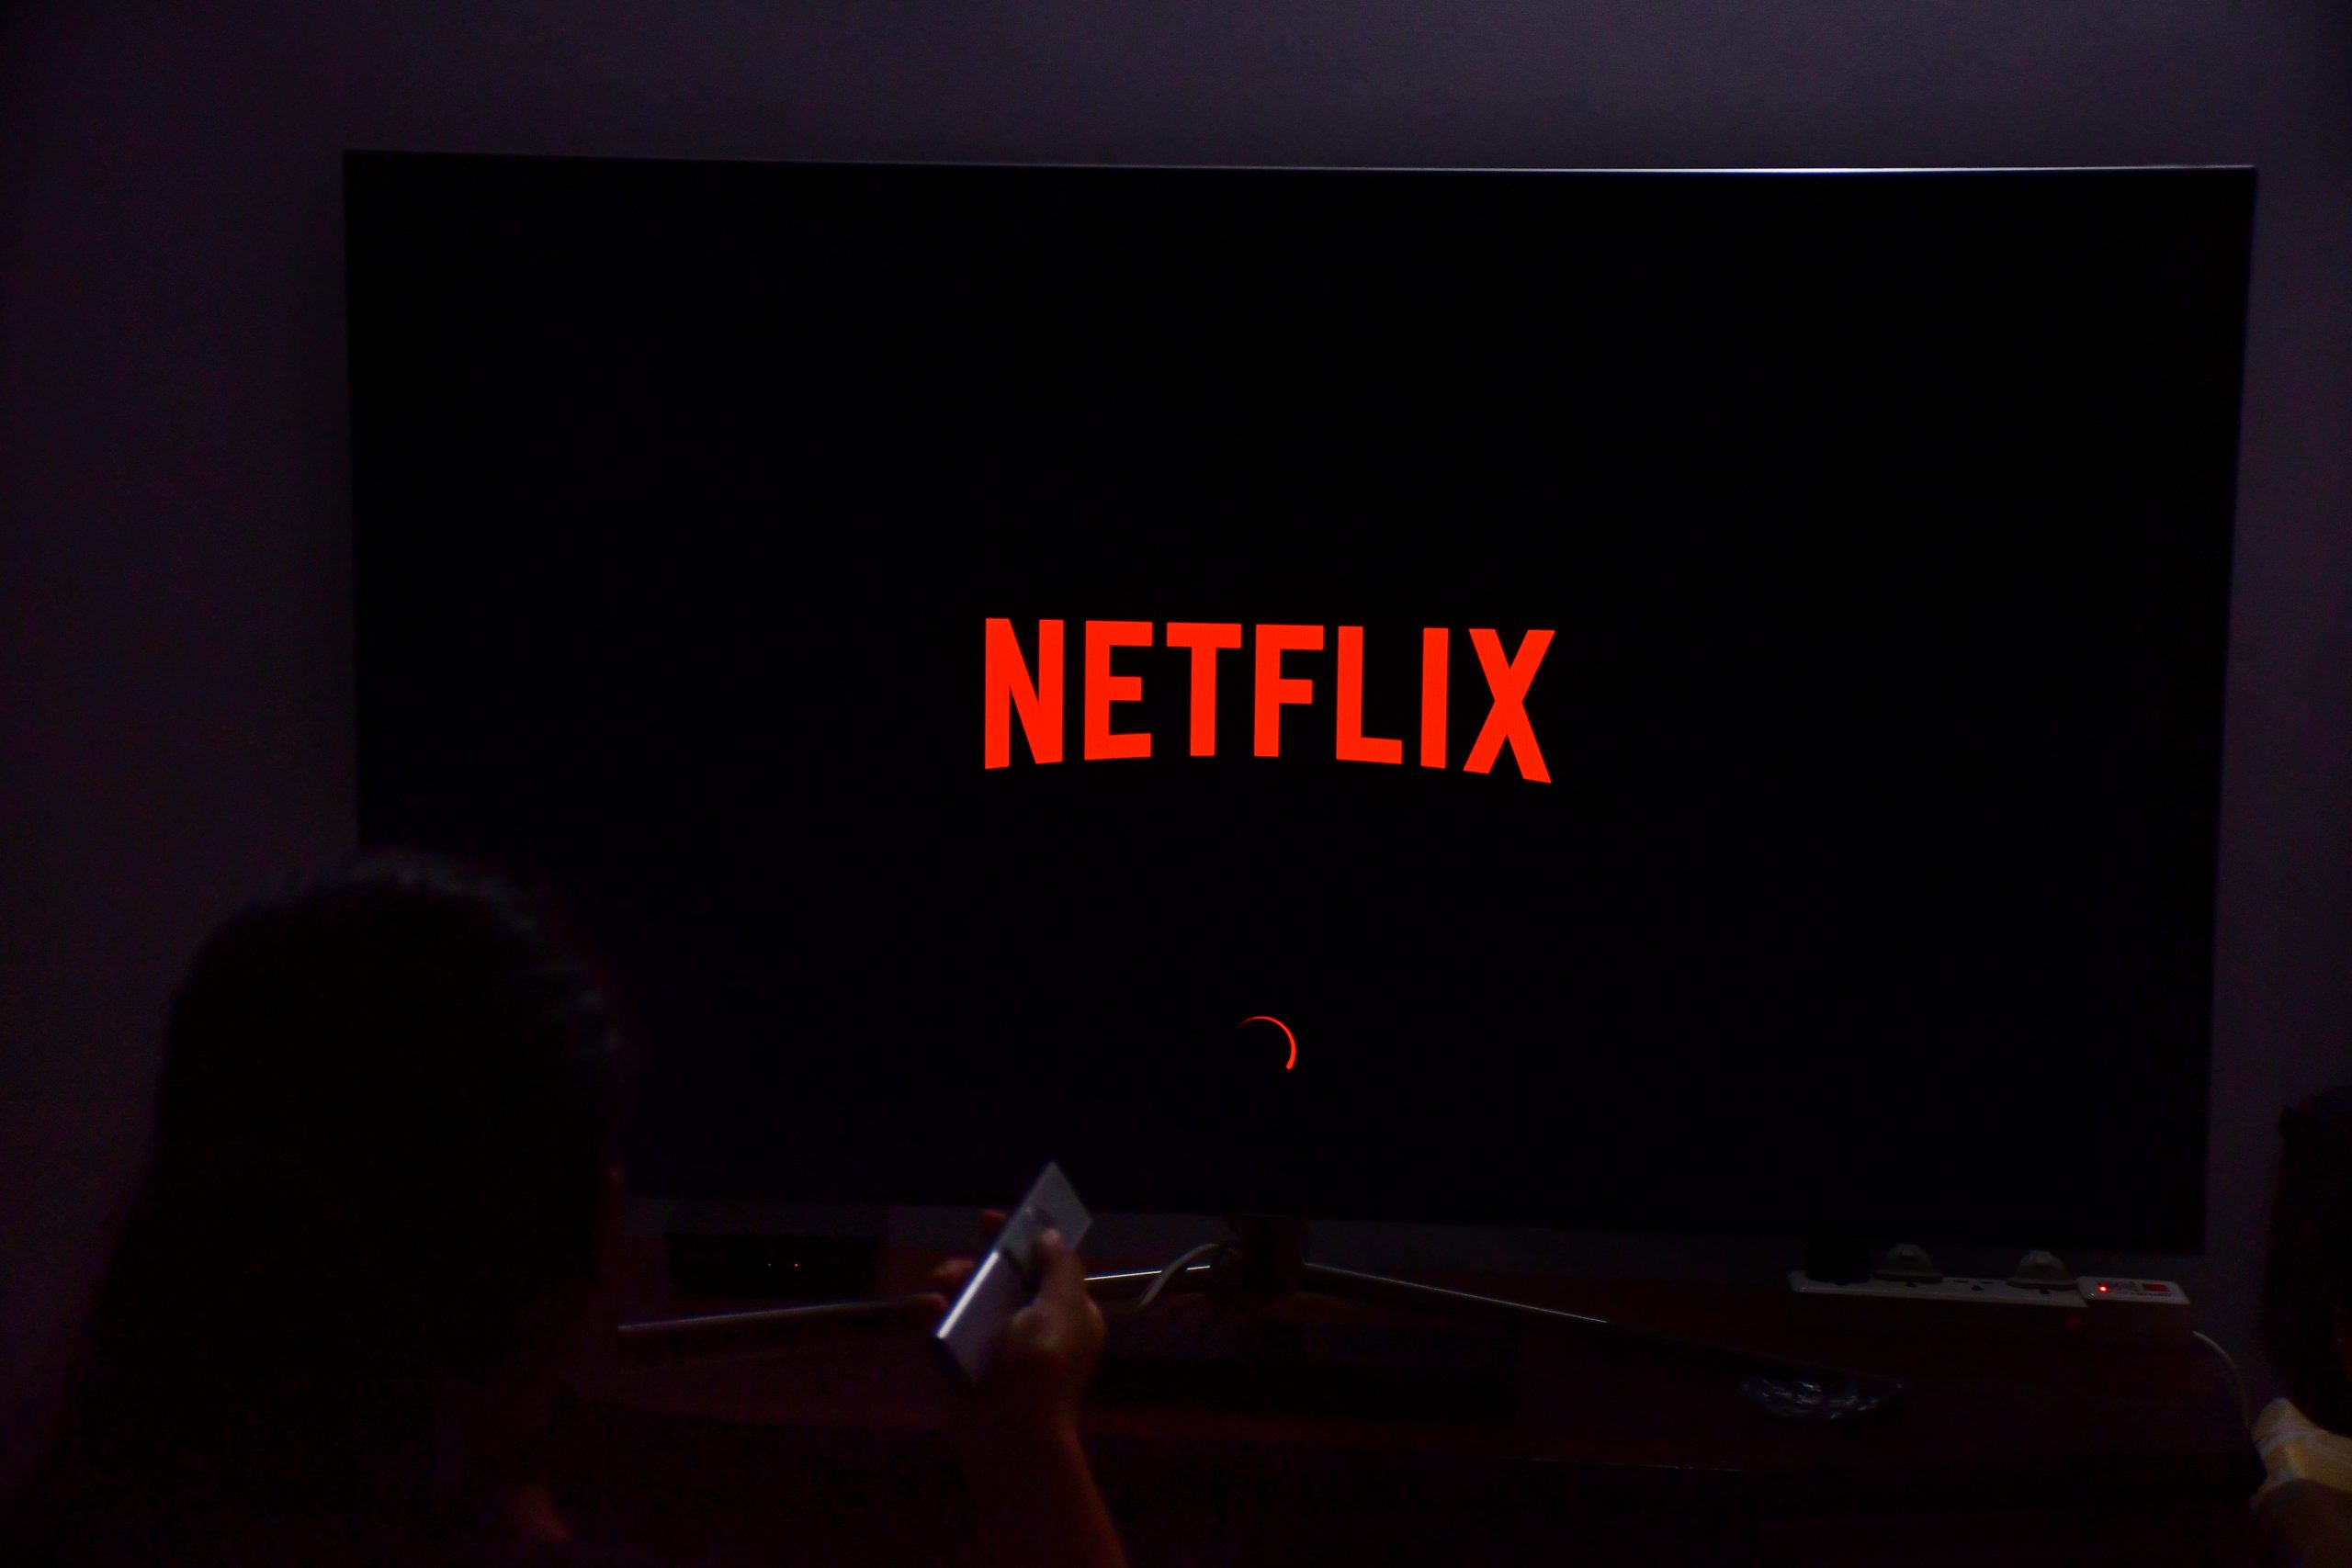 Netflix for movies and episodes